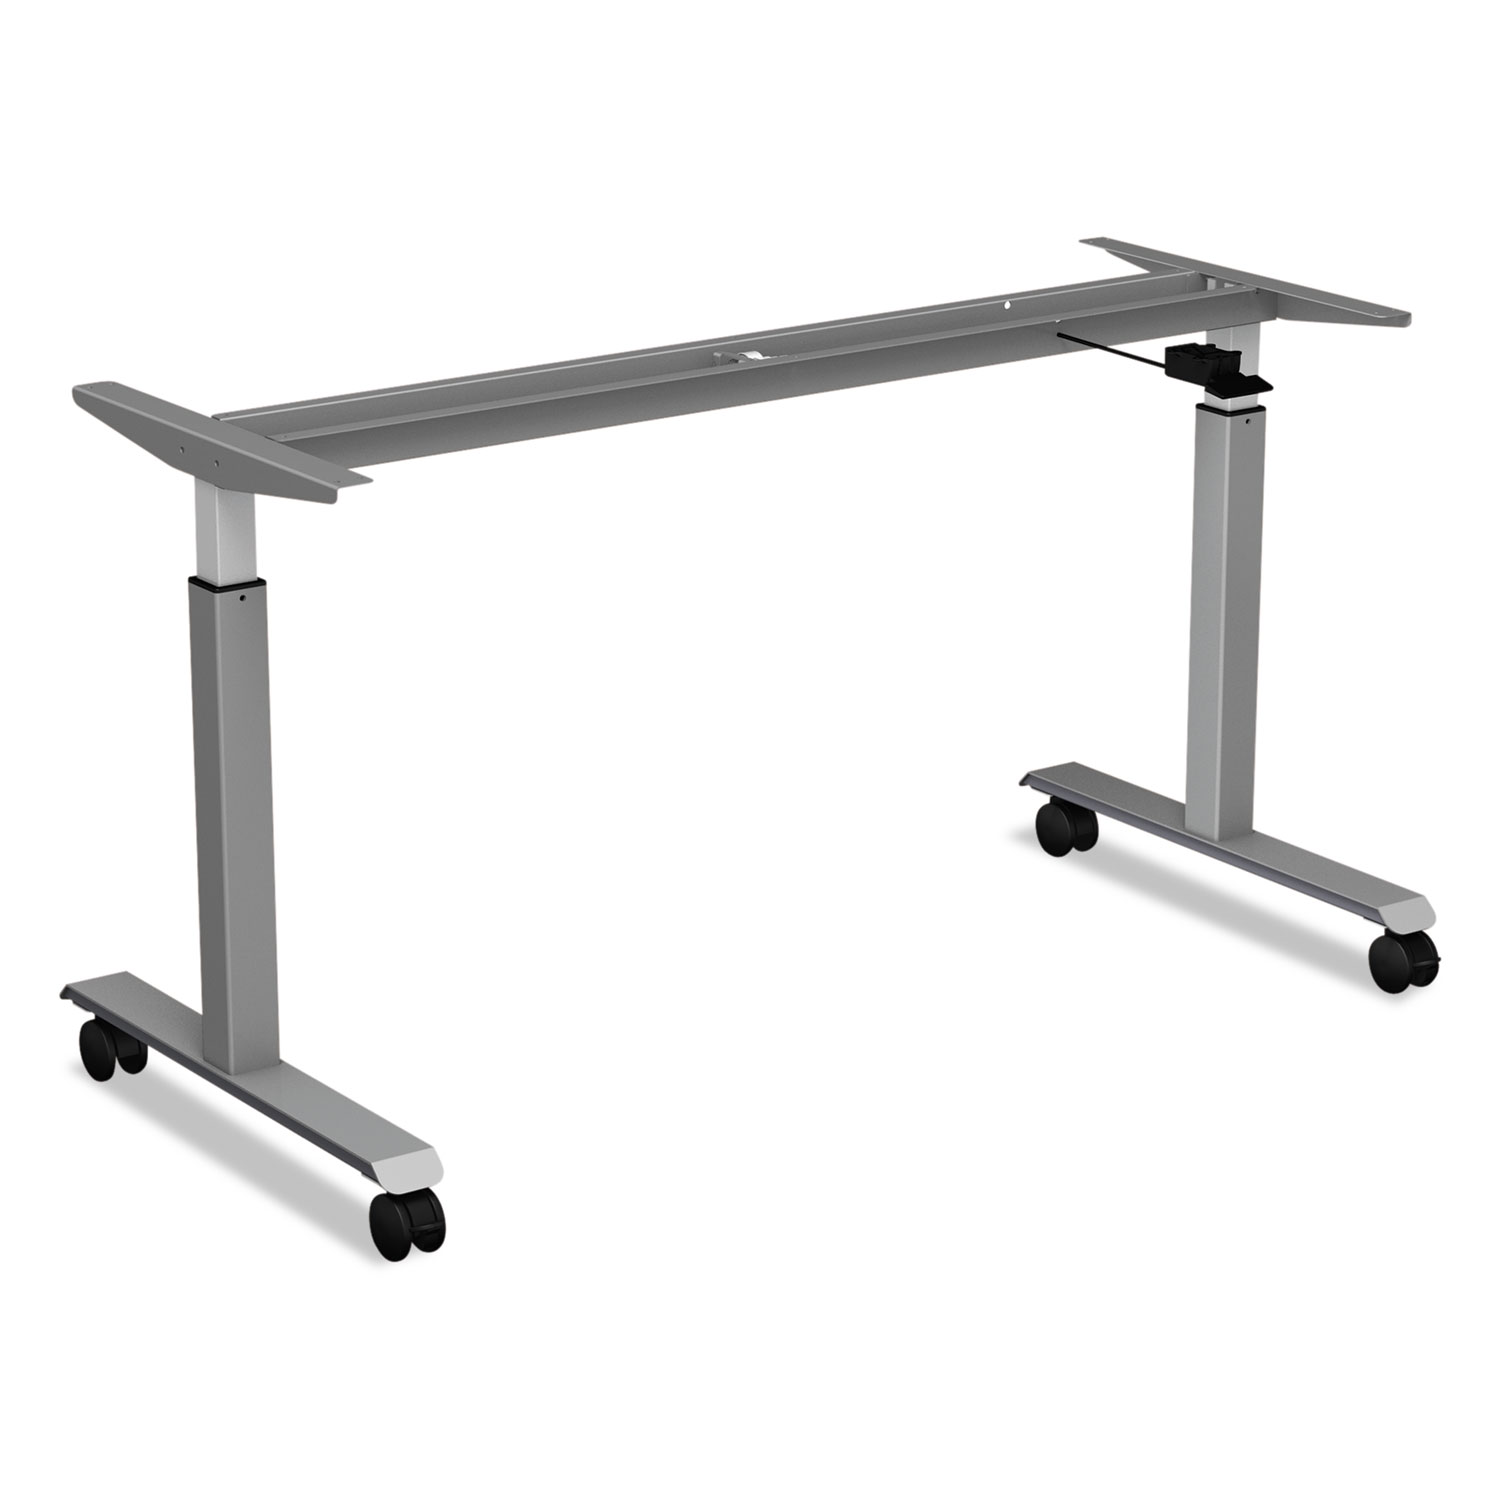 or for desk legs tray folding adjustable laptop bed with notebook image table height